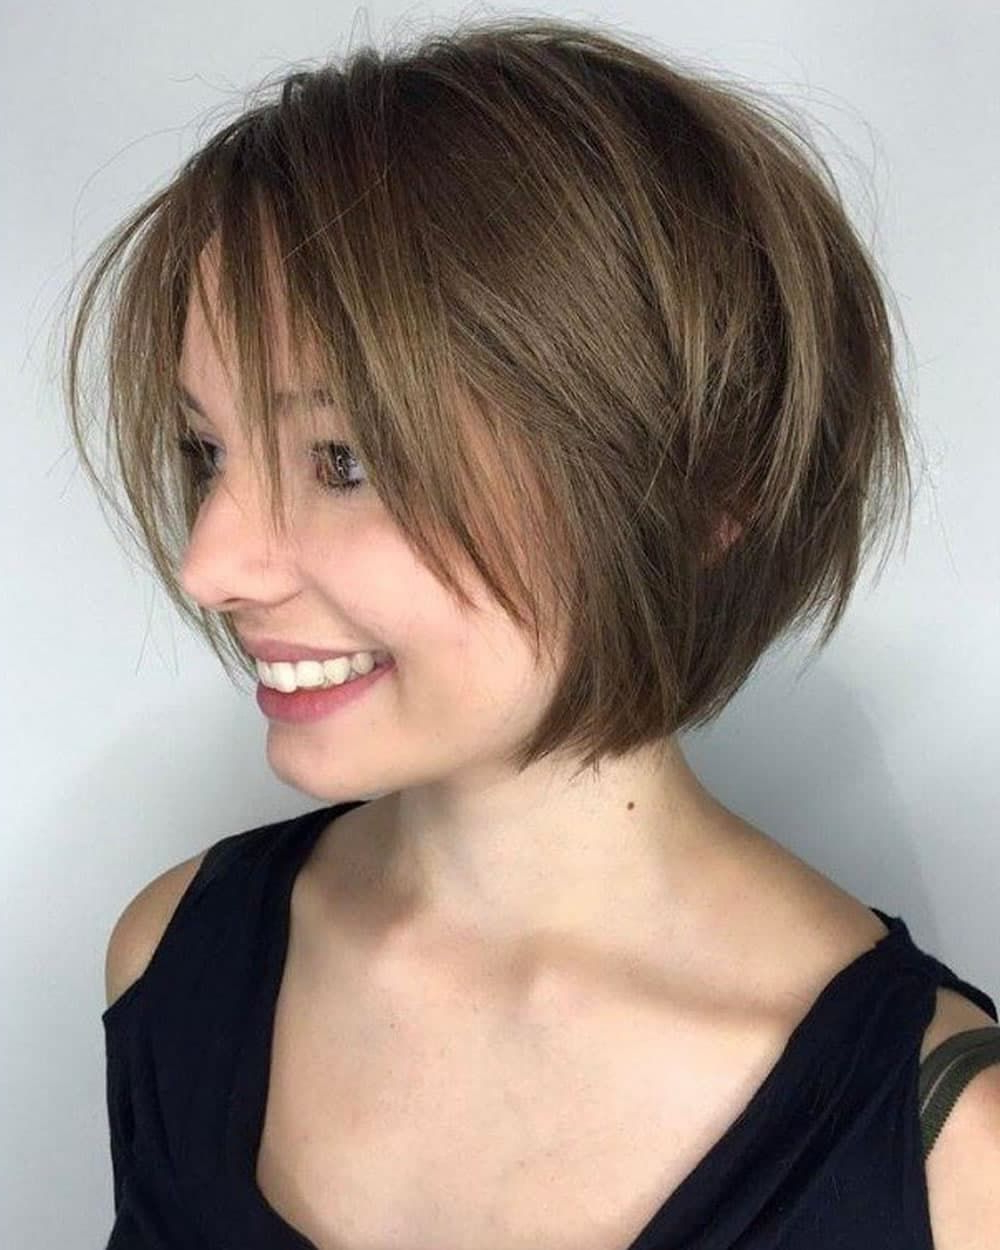 Cute Short Bob Haircuts For Round Faces Womens Hairstyles Inside Trendy Rounded Short Bob Hairstyles (View 10 of 20)